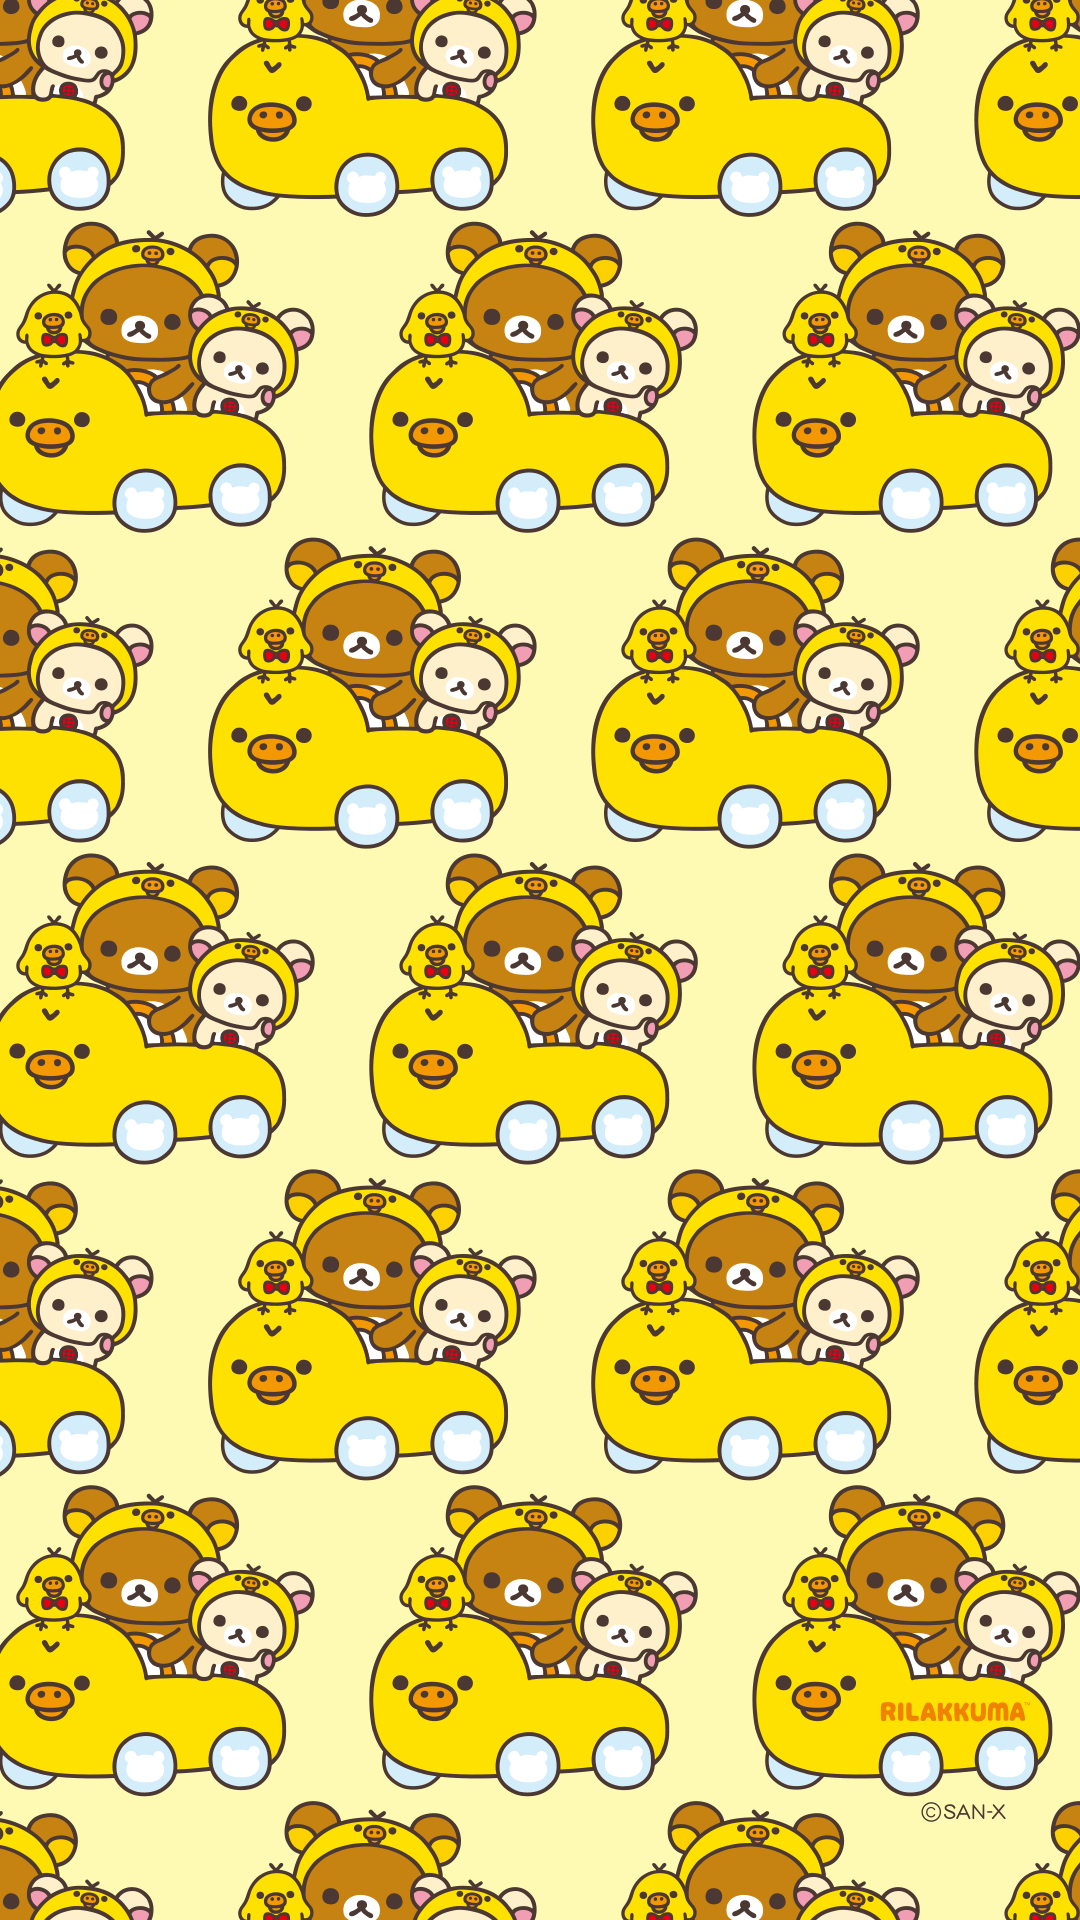 Awesome Rilakkuma Wallpapers - WallpaperAccess